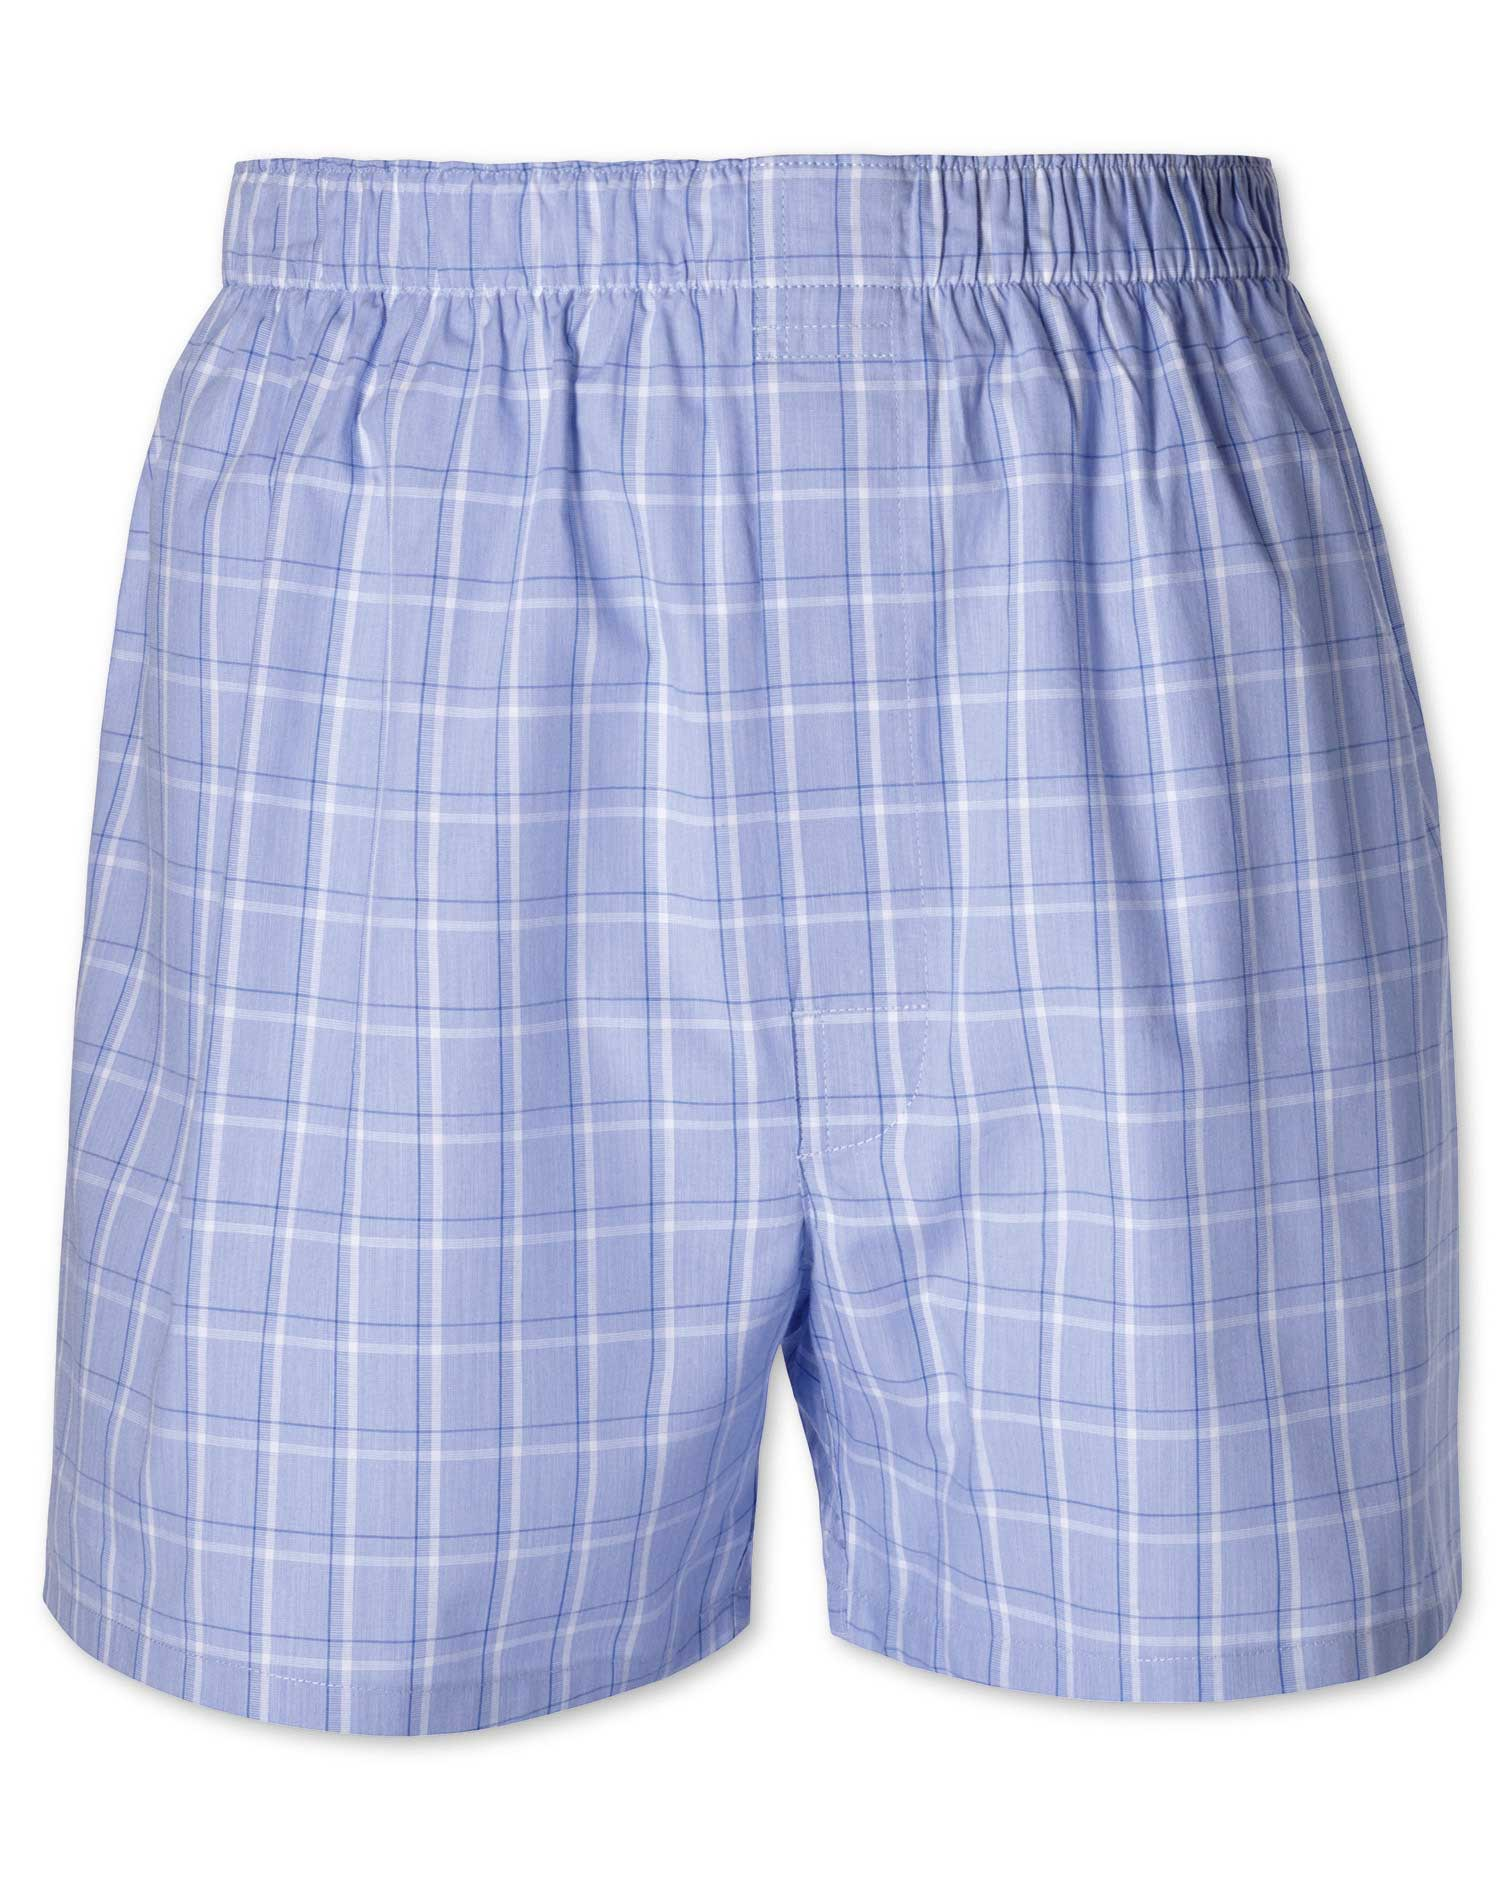 Blue Check Woven Boxers Size Medium by Charles Tyrwhitt